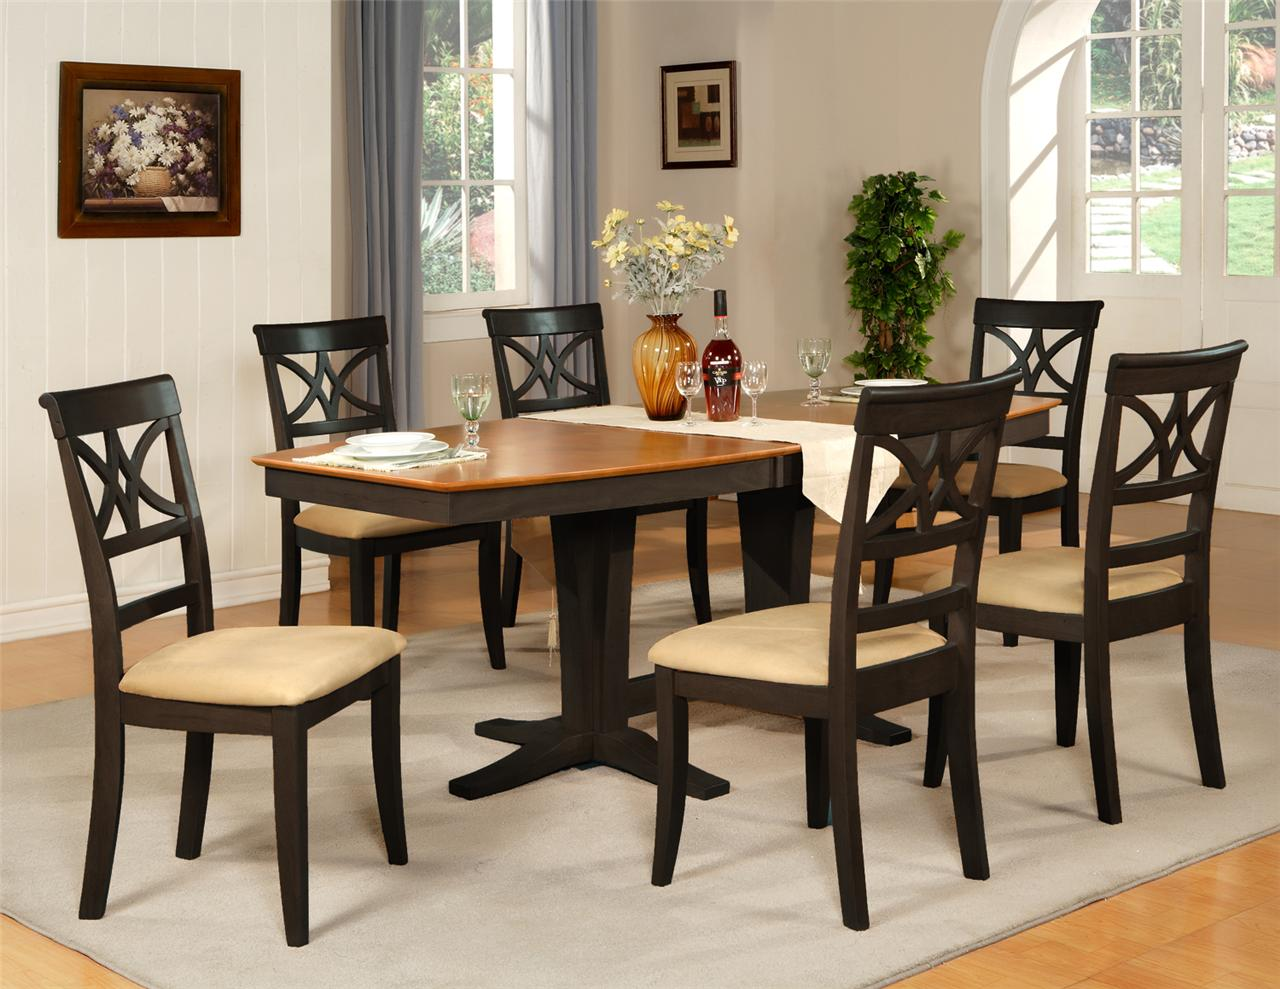 Great Dining Room Table and Chair Sets 1280 x 989 · 152 kB · jpeg